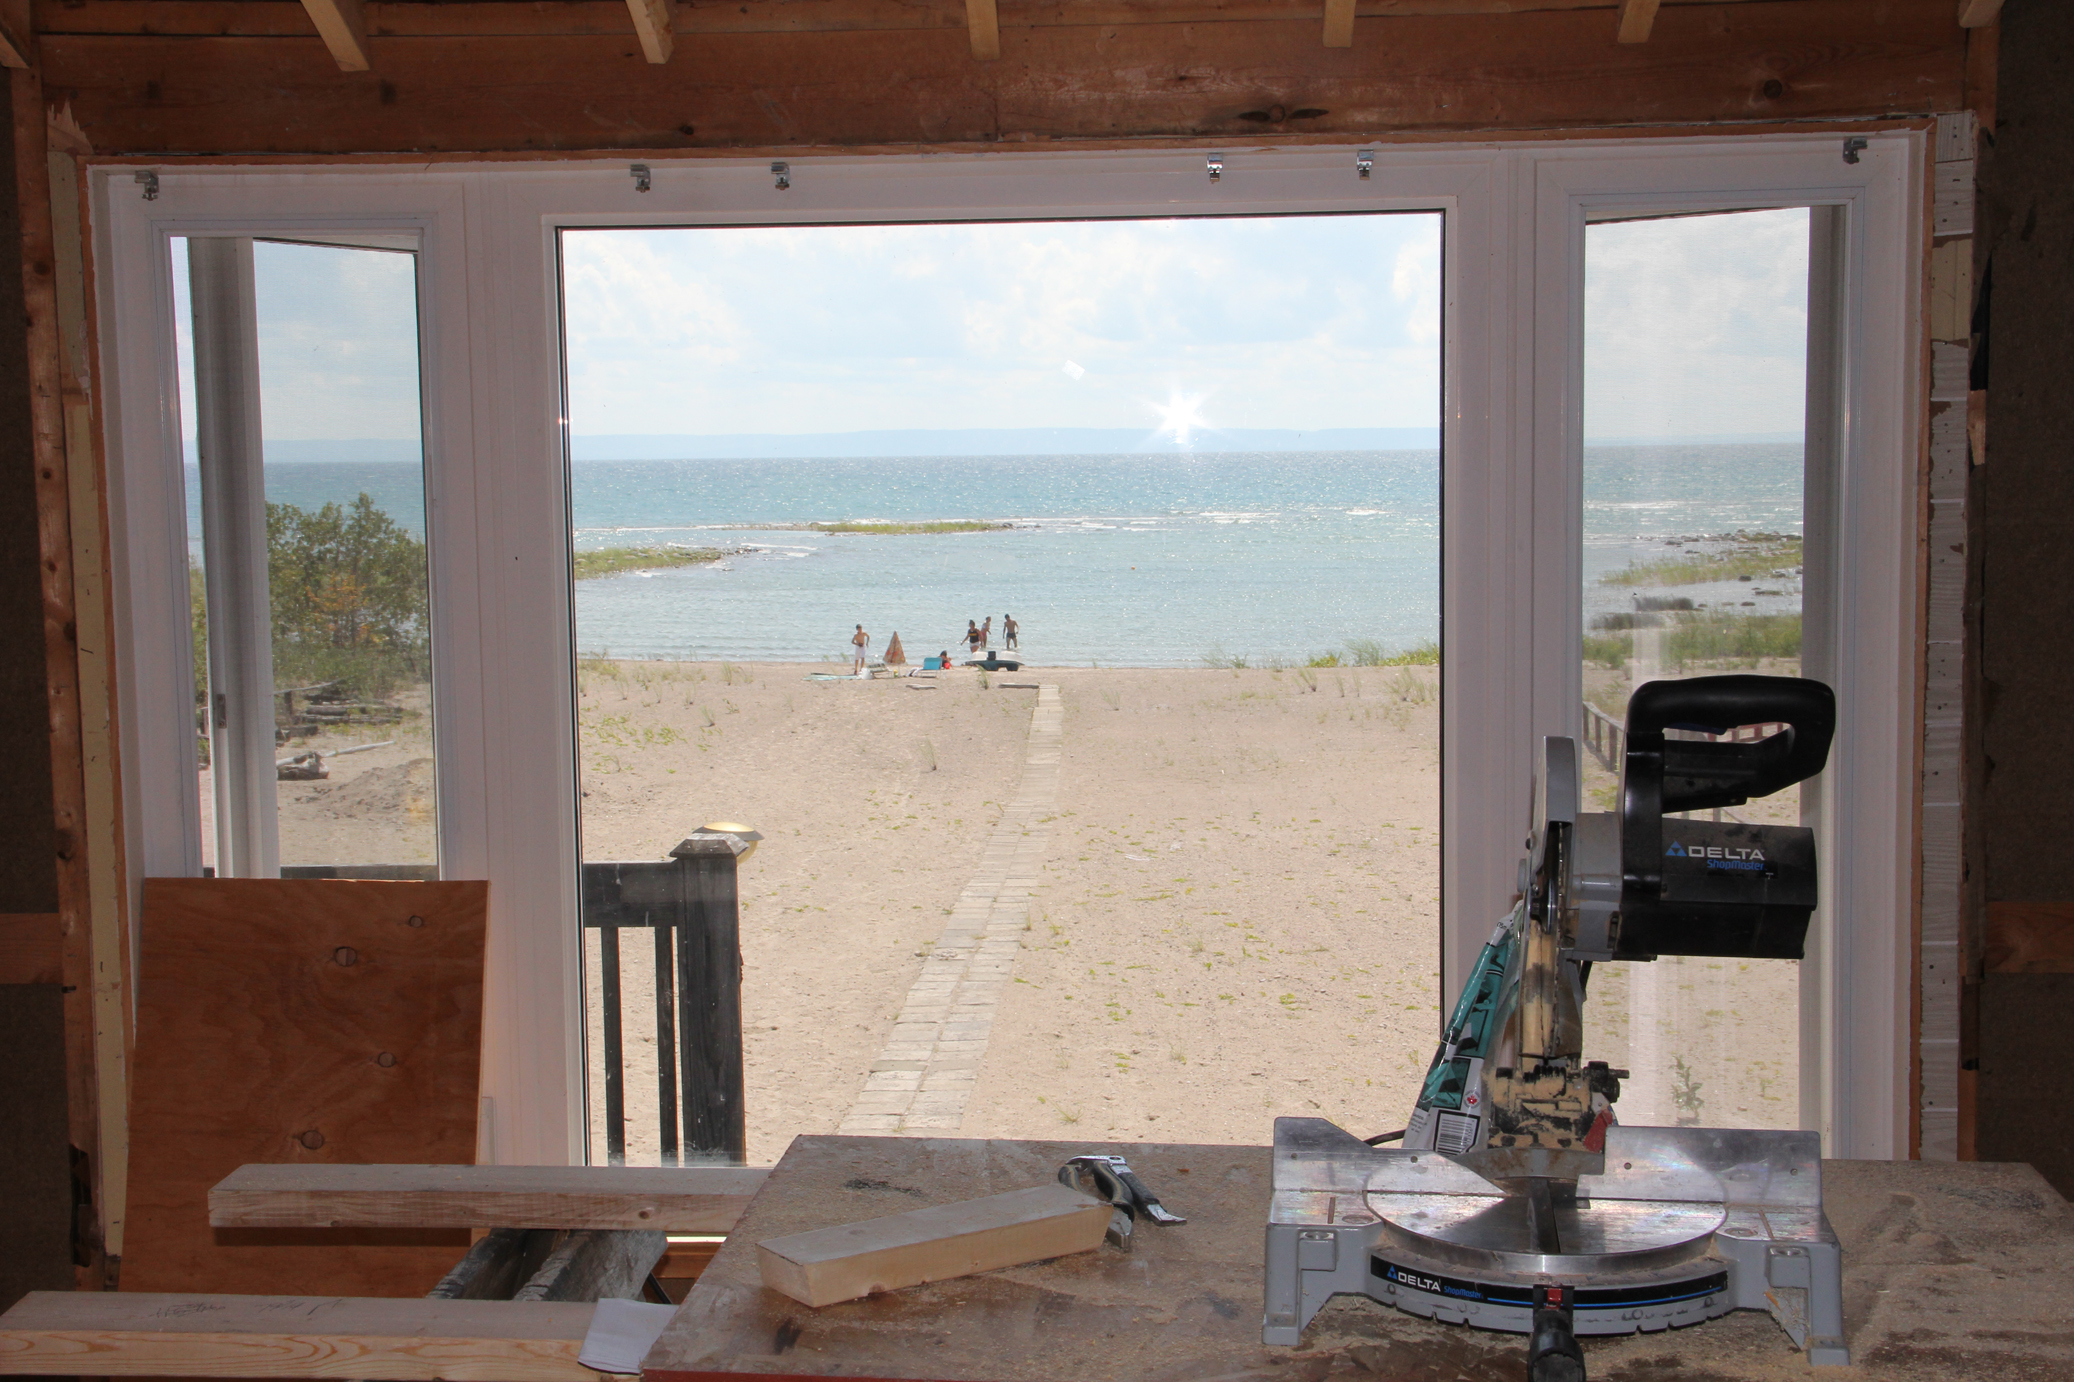 View of the beach from the second floor.